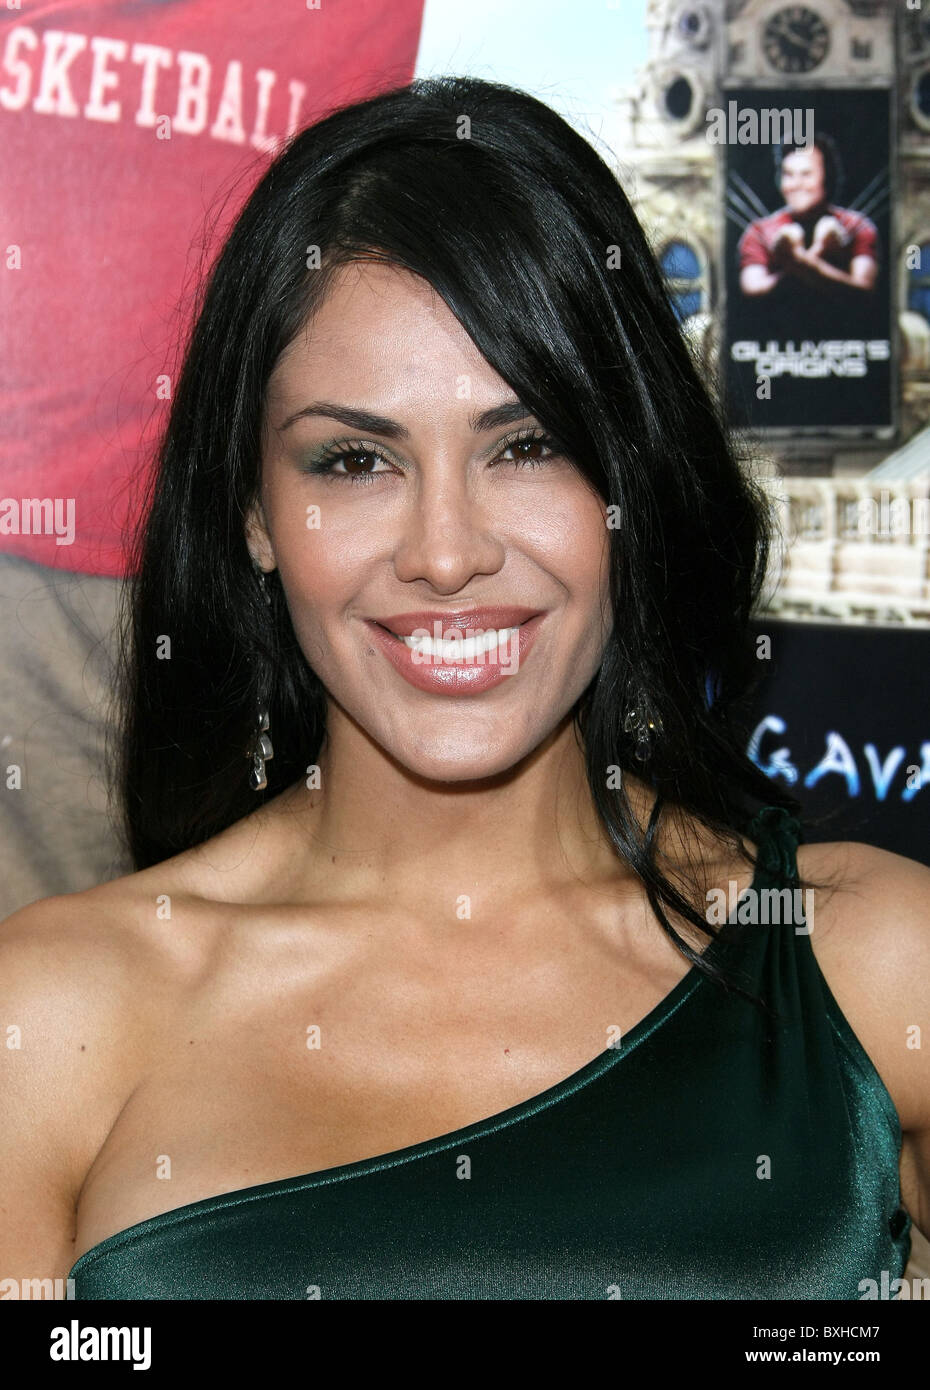 CARLA ORTIZ GULLIVER'S TRAVELS LOS ANGELES PREMIERE HOLLYWOOD LOS ANGELES CALIFORNIA USA 18 December 2010 - Stock Image